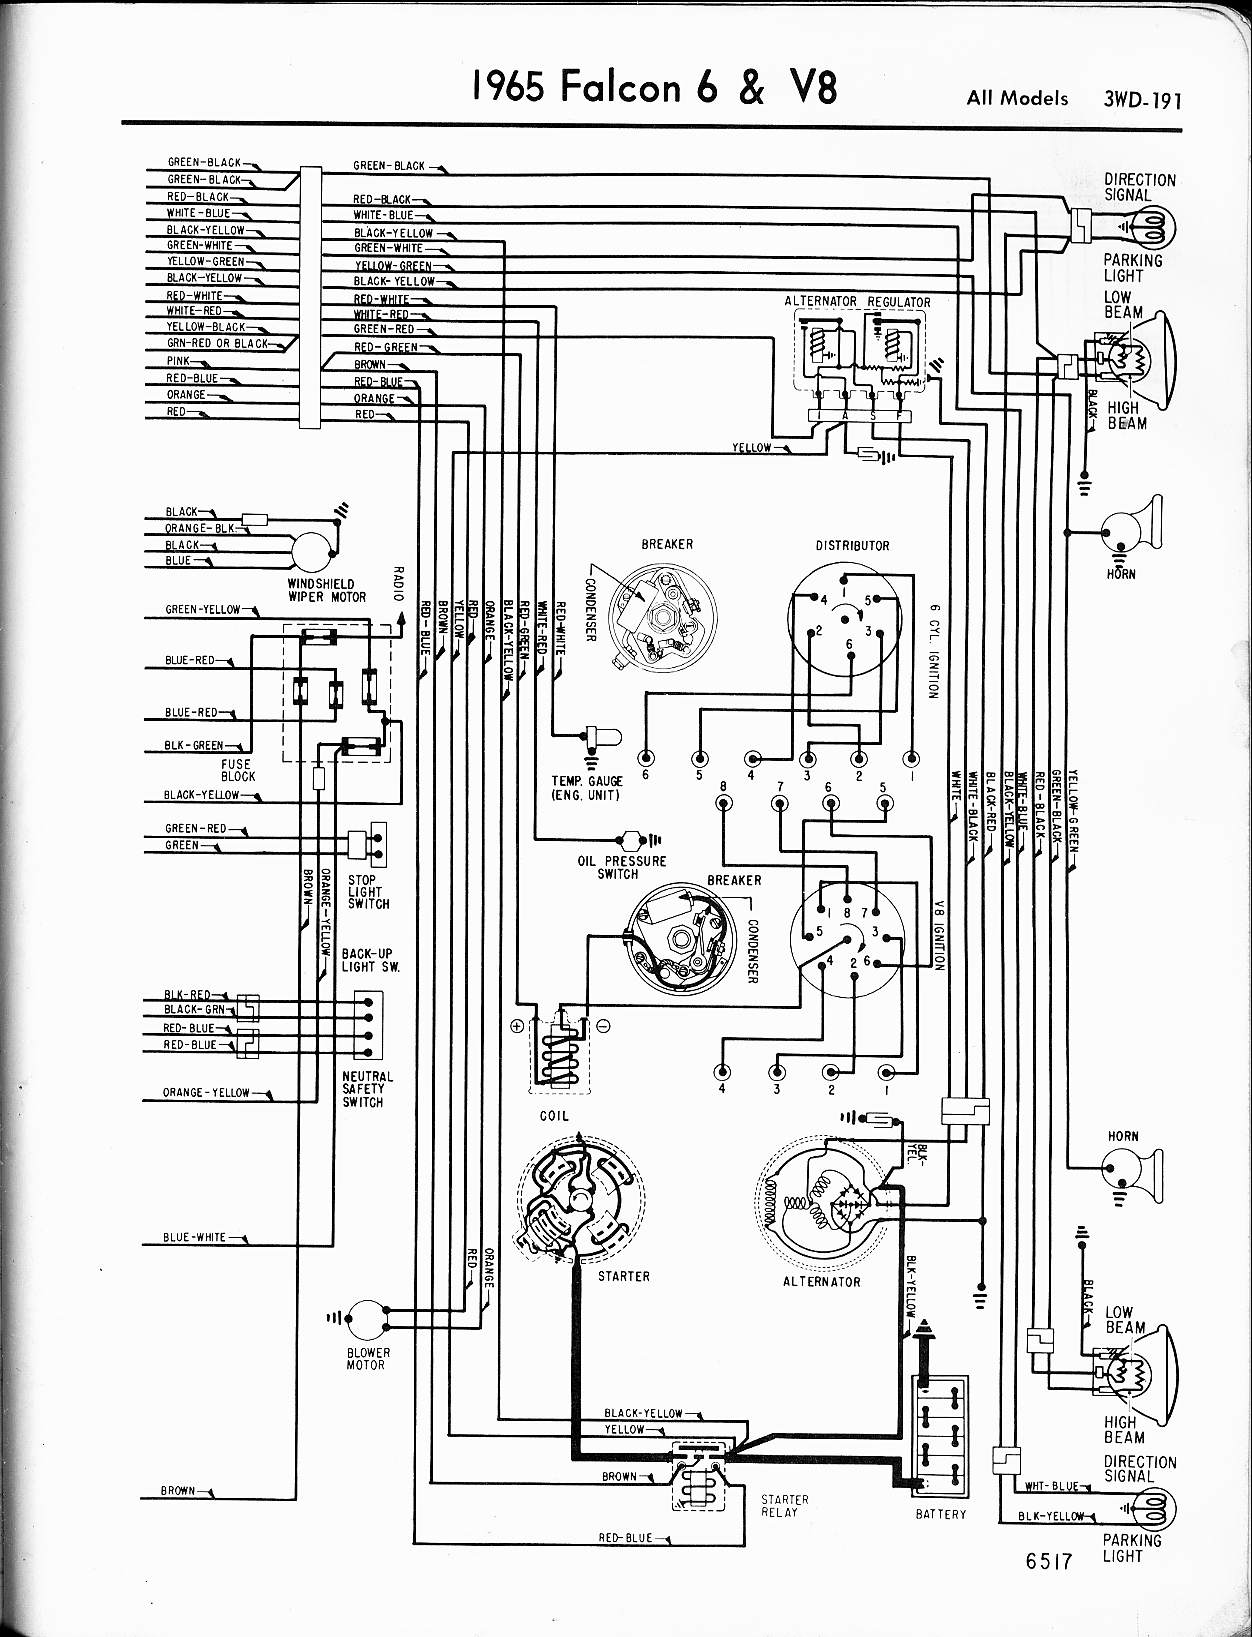 MWire5765 191 engine wire diagram for 65 falcon 65 falcon hot rod \u2022 wiring 1965 ford mustang wiring diagrams at arjmand.co